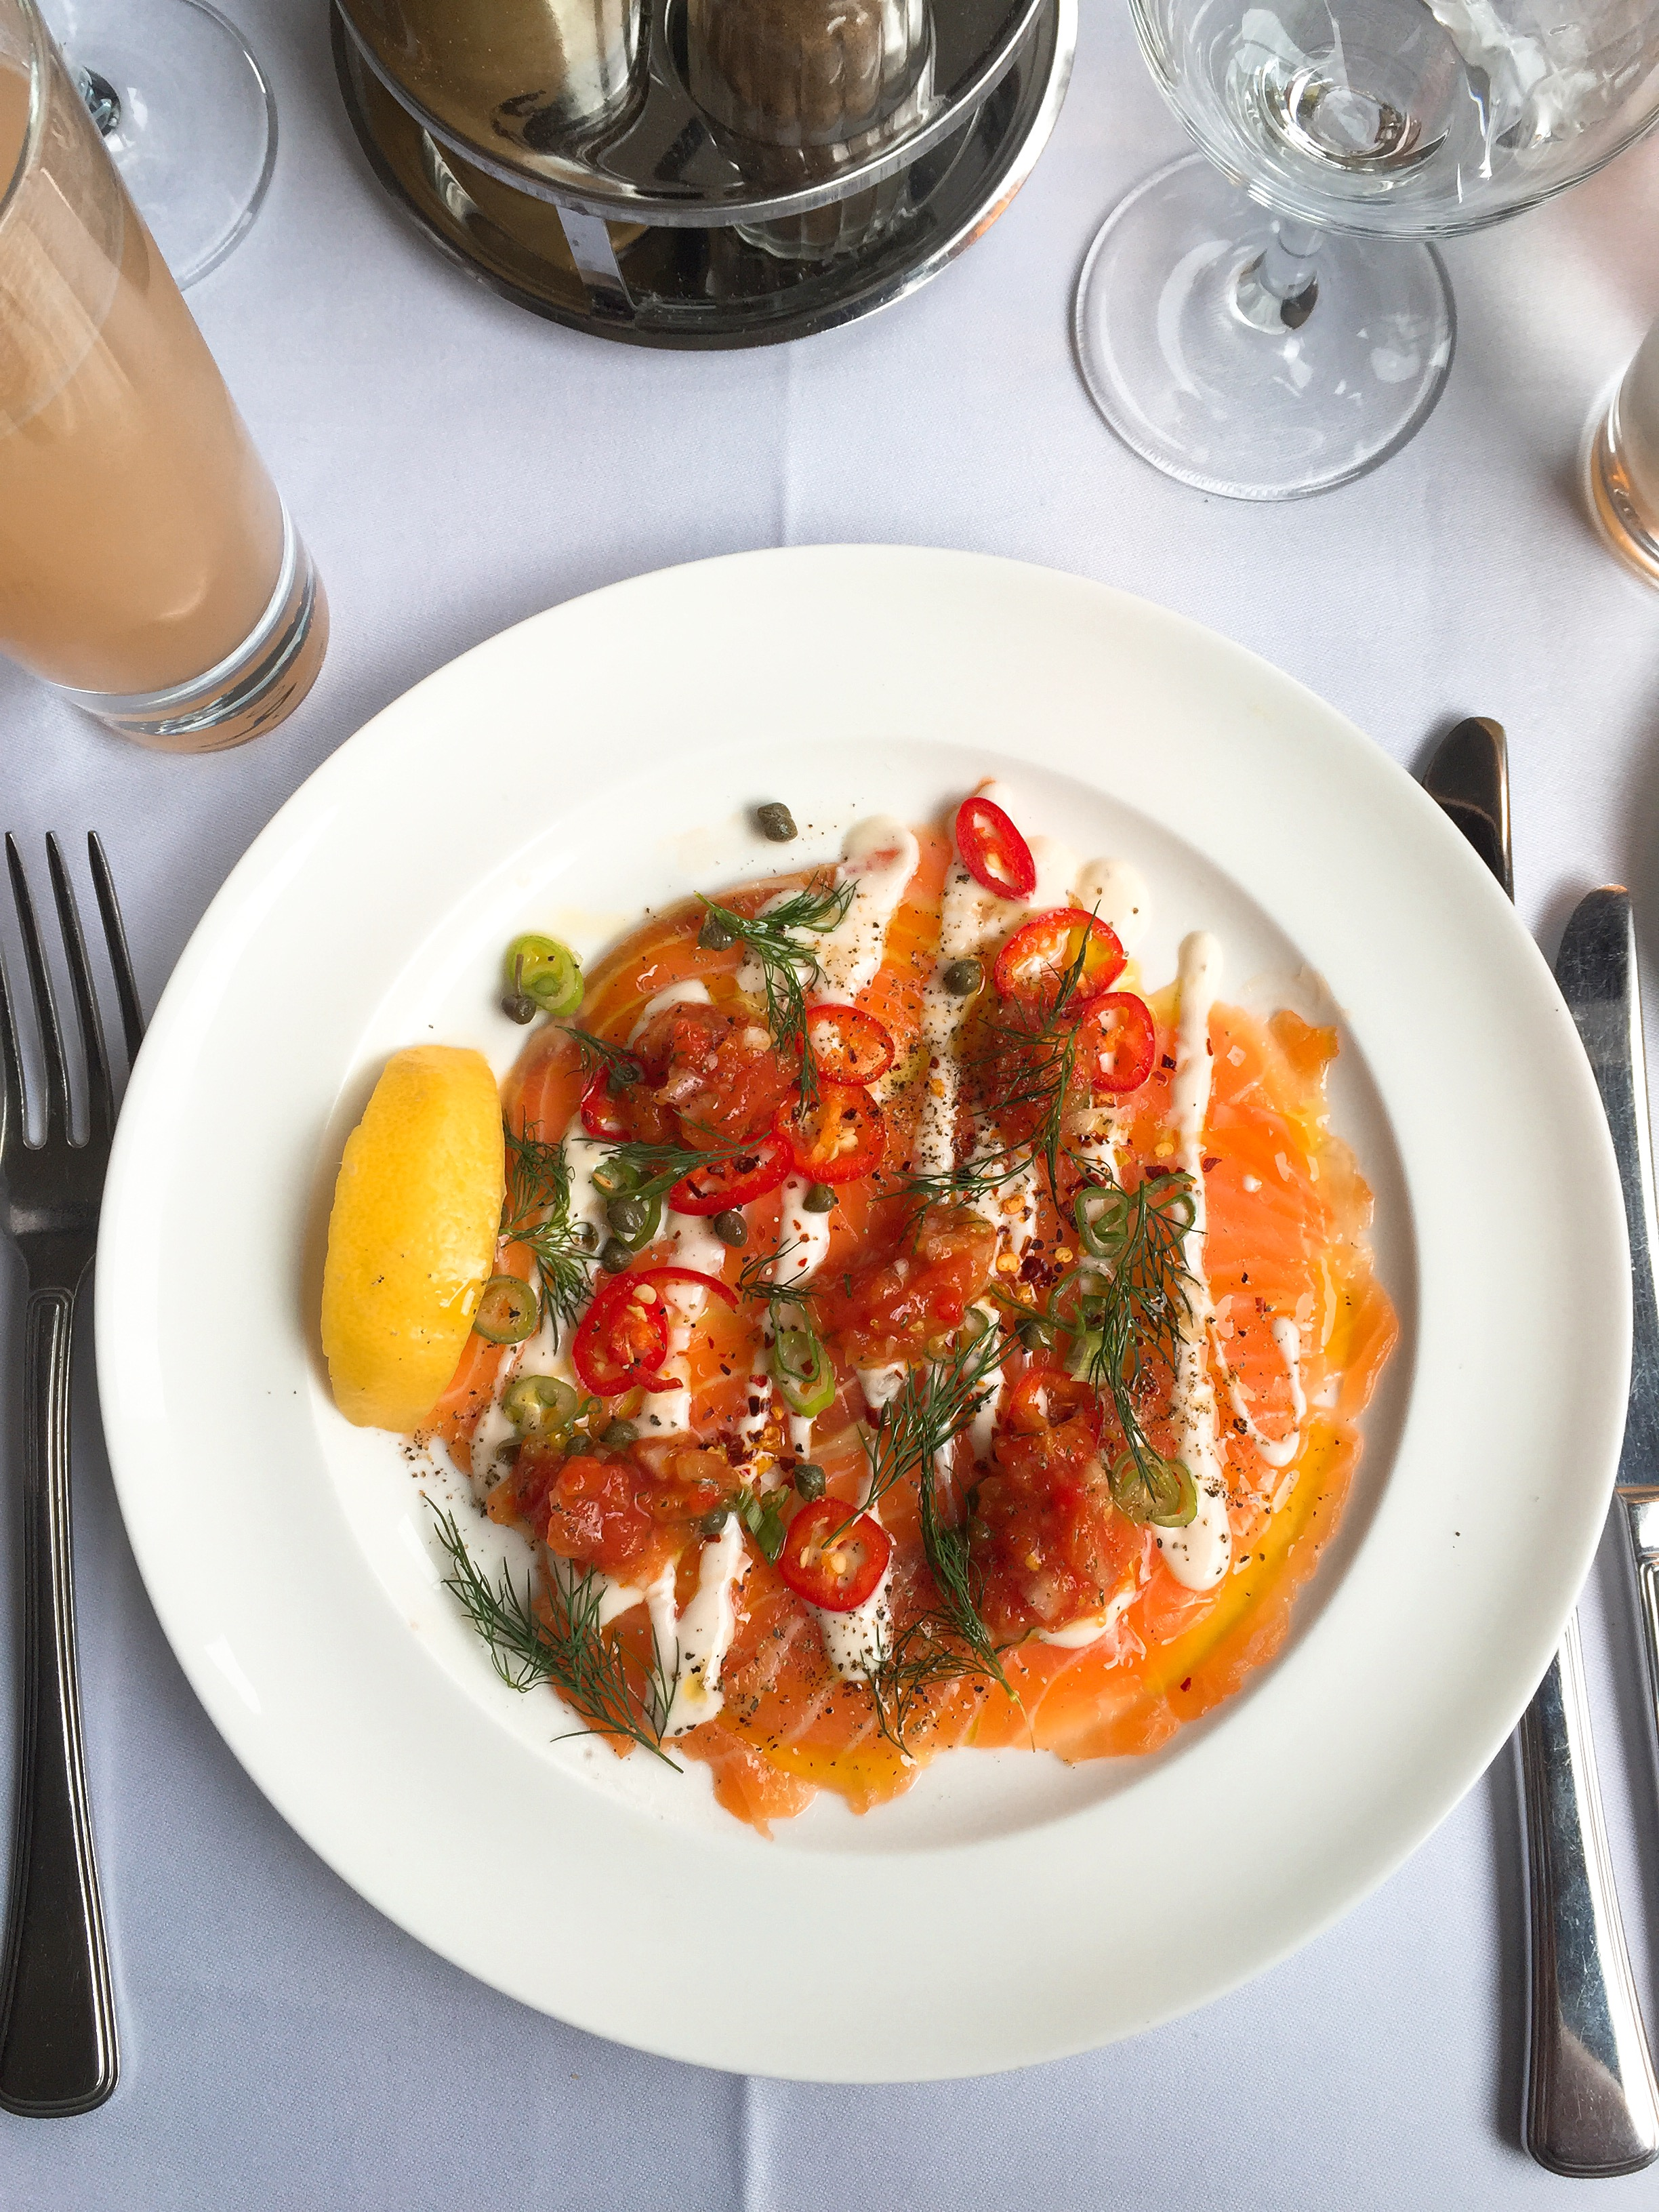 Salmon starter - Cafe Monico review